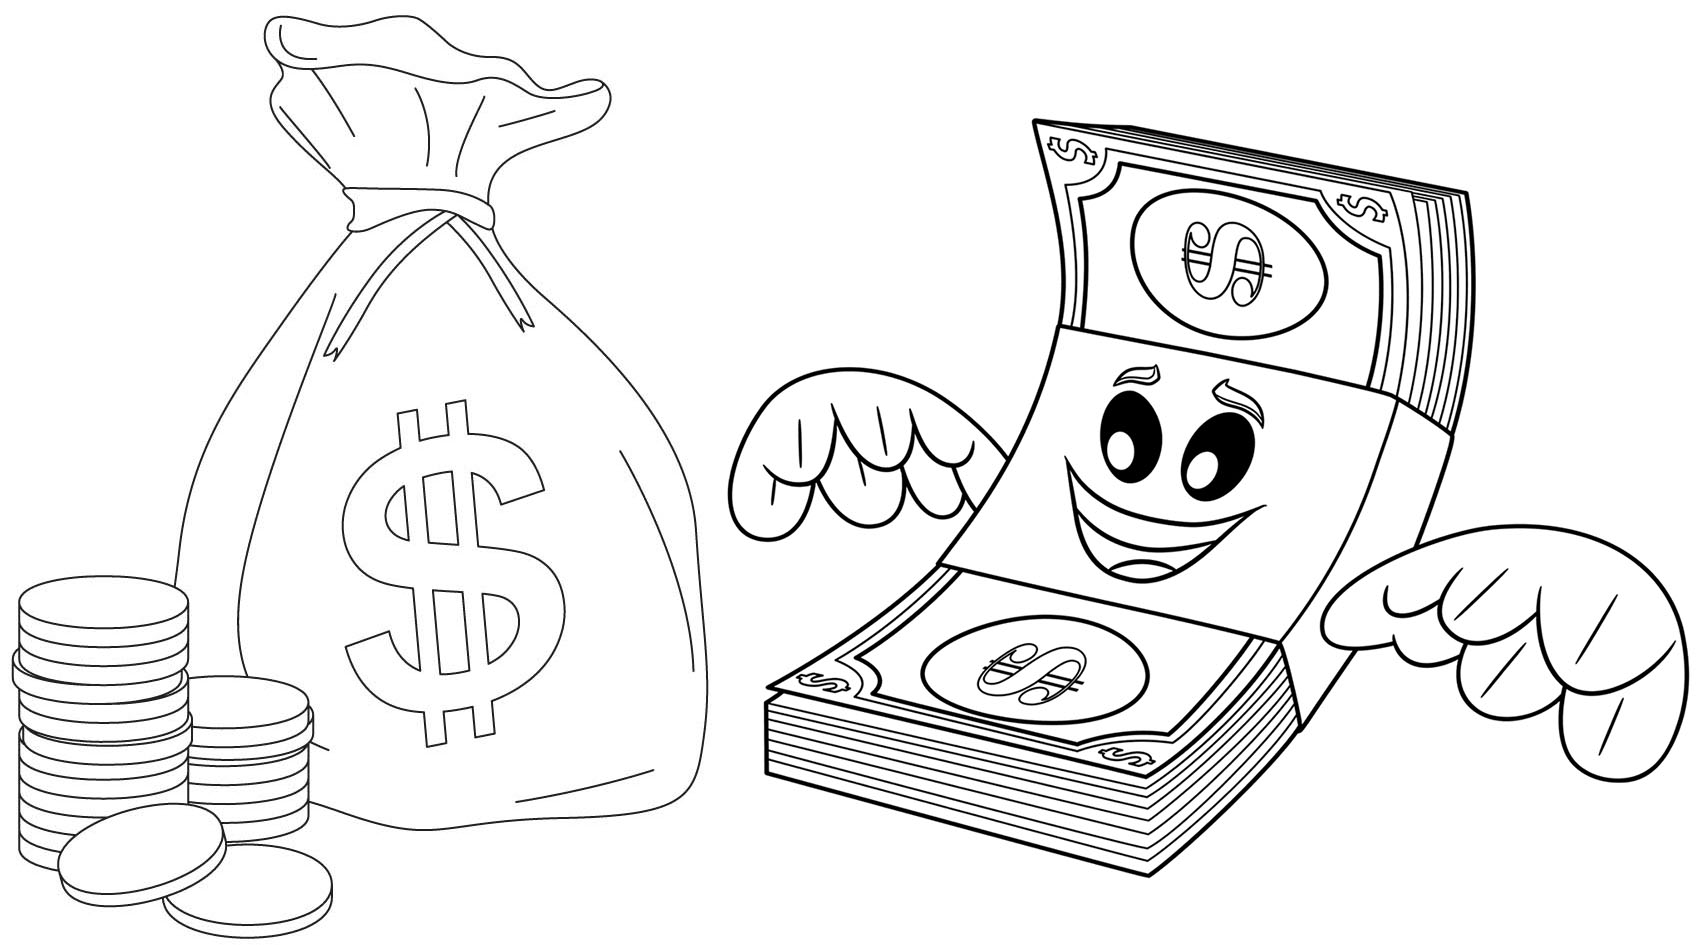 printable money coloring pages 12 best images of money worksheets to print out coloring pages coloring money printable